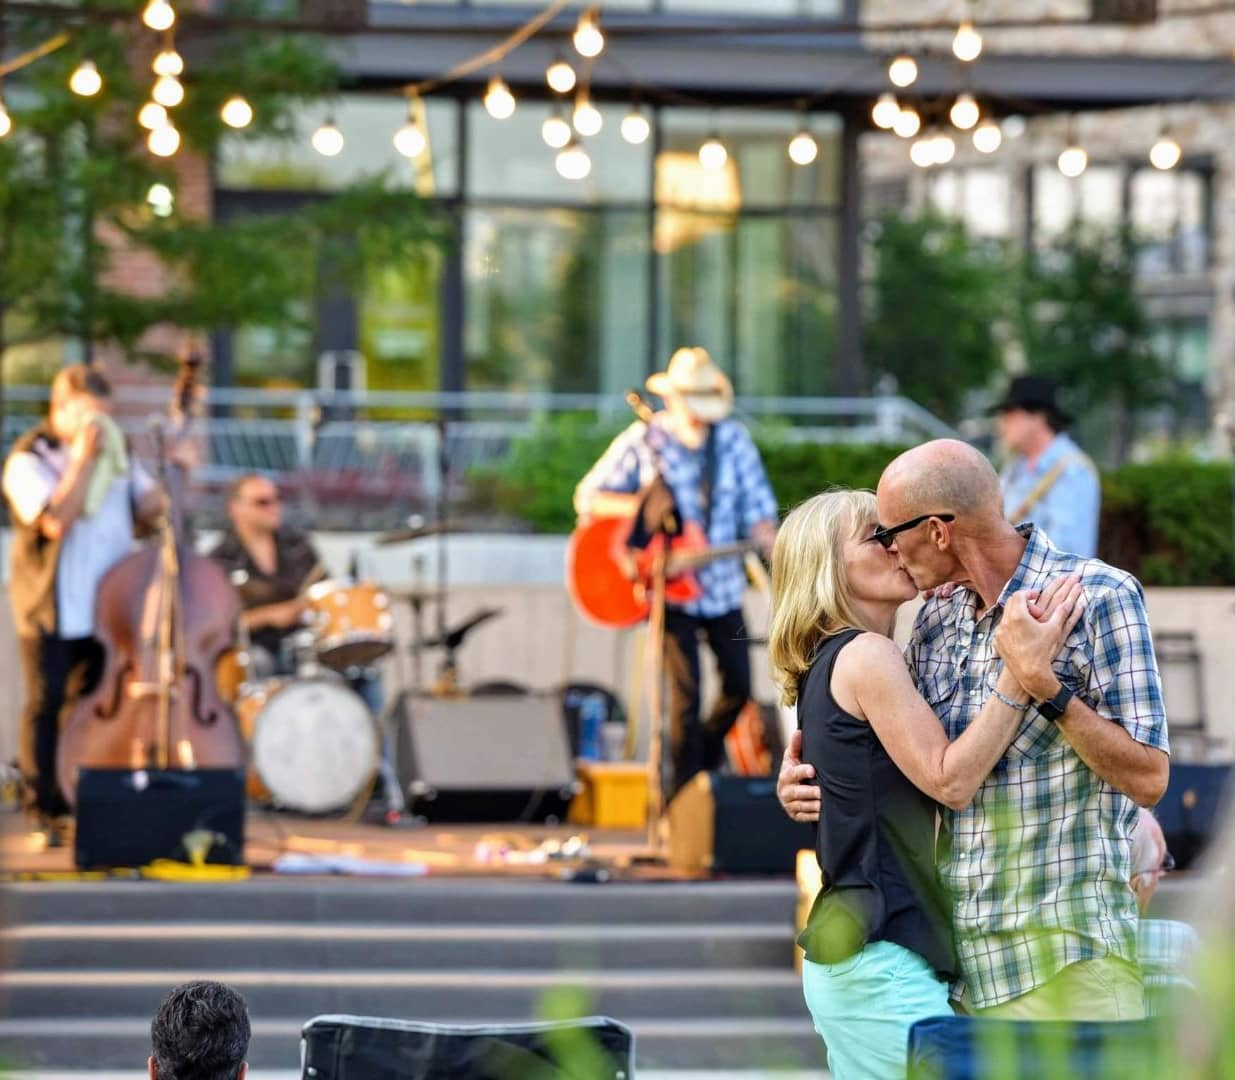 Couple kissing and dancing in front of live music with a stage and band in the background.